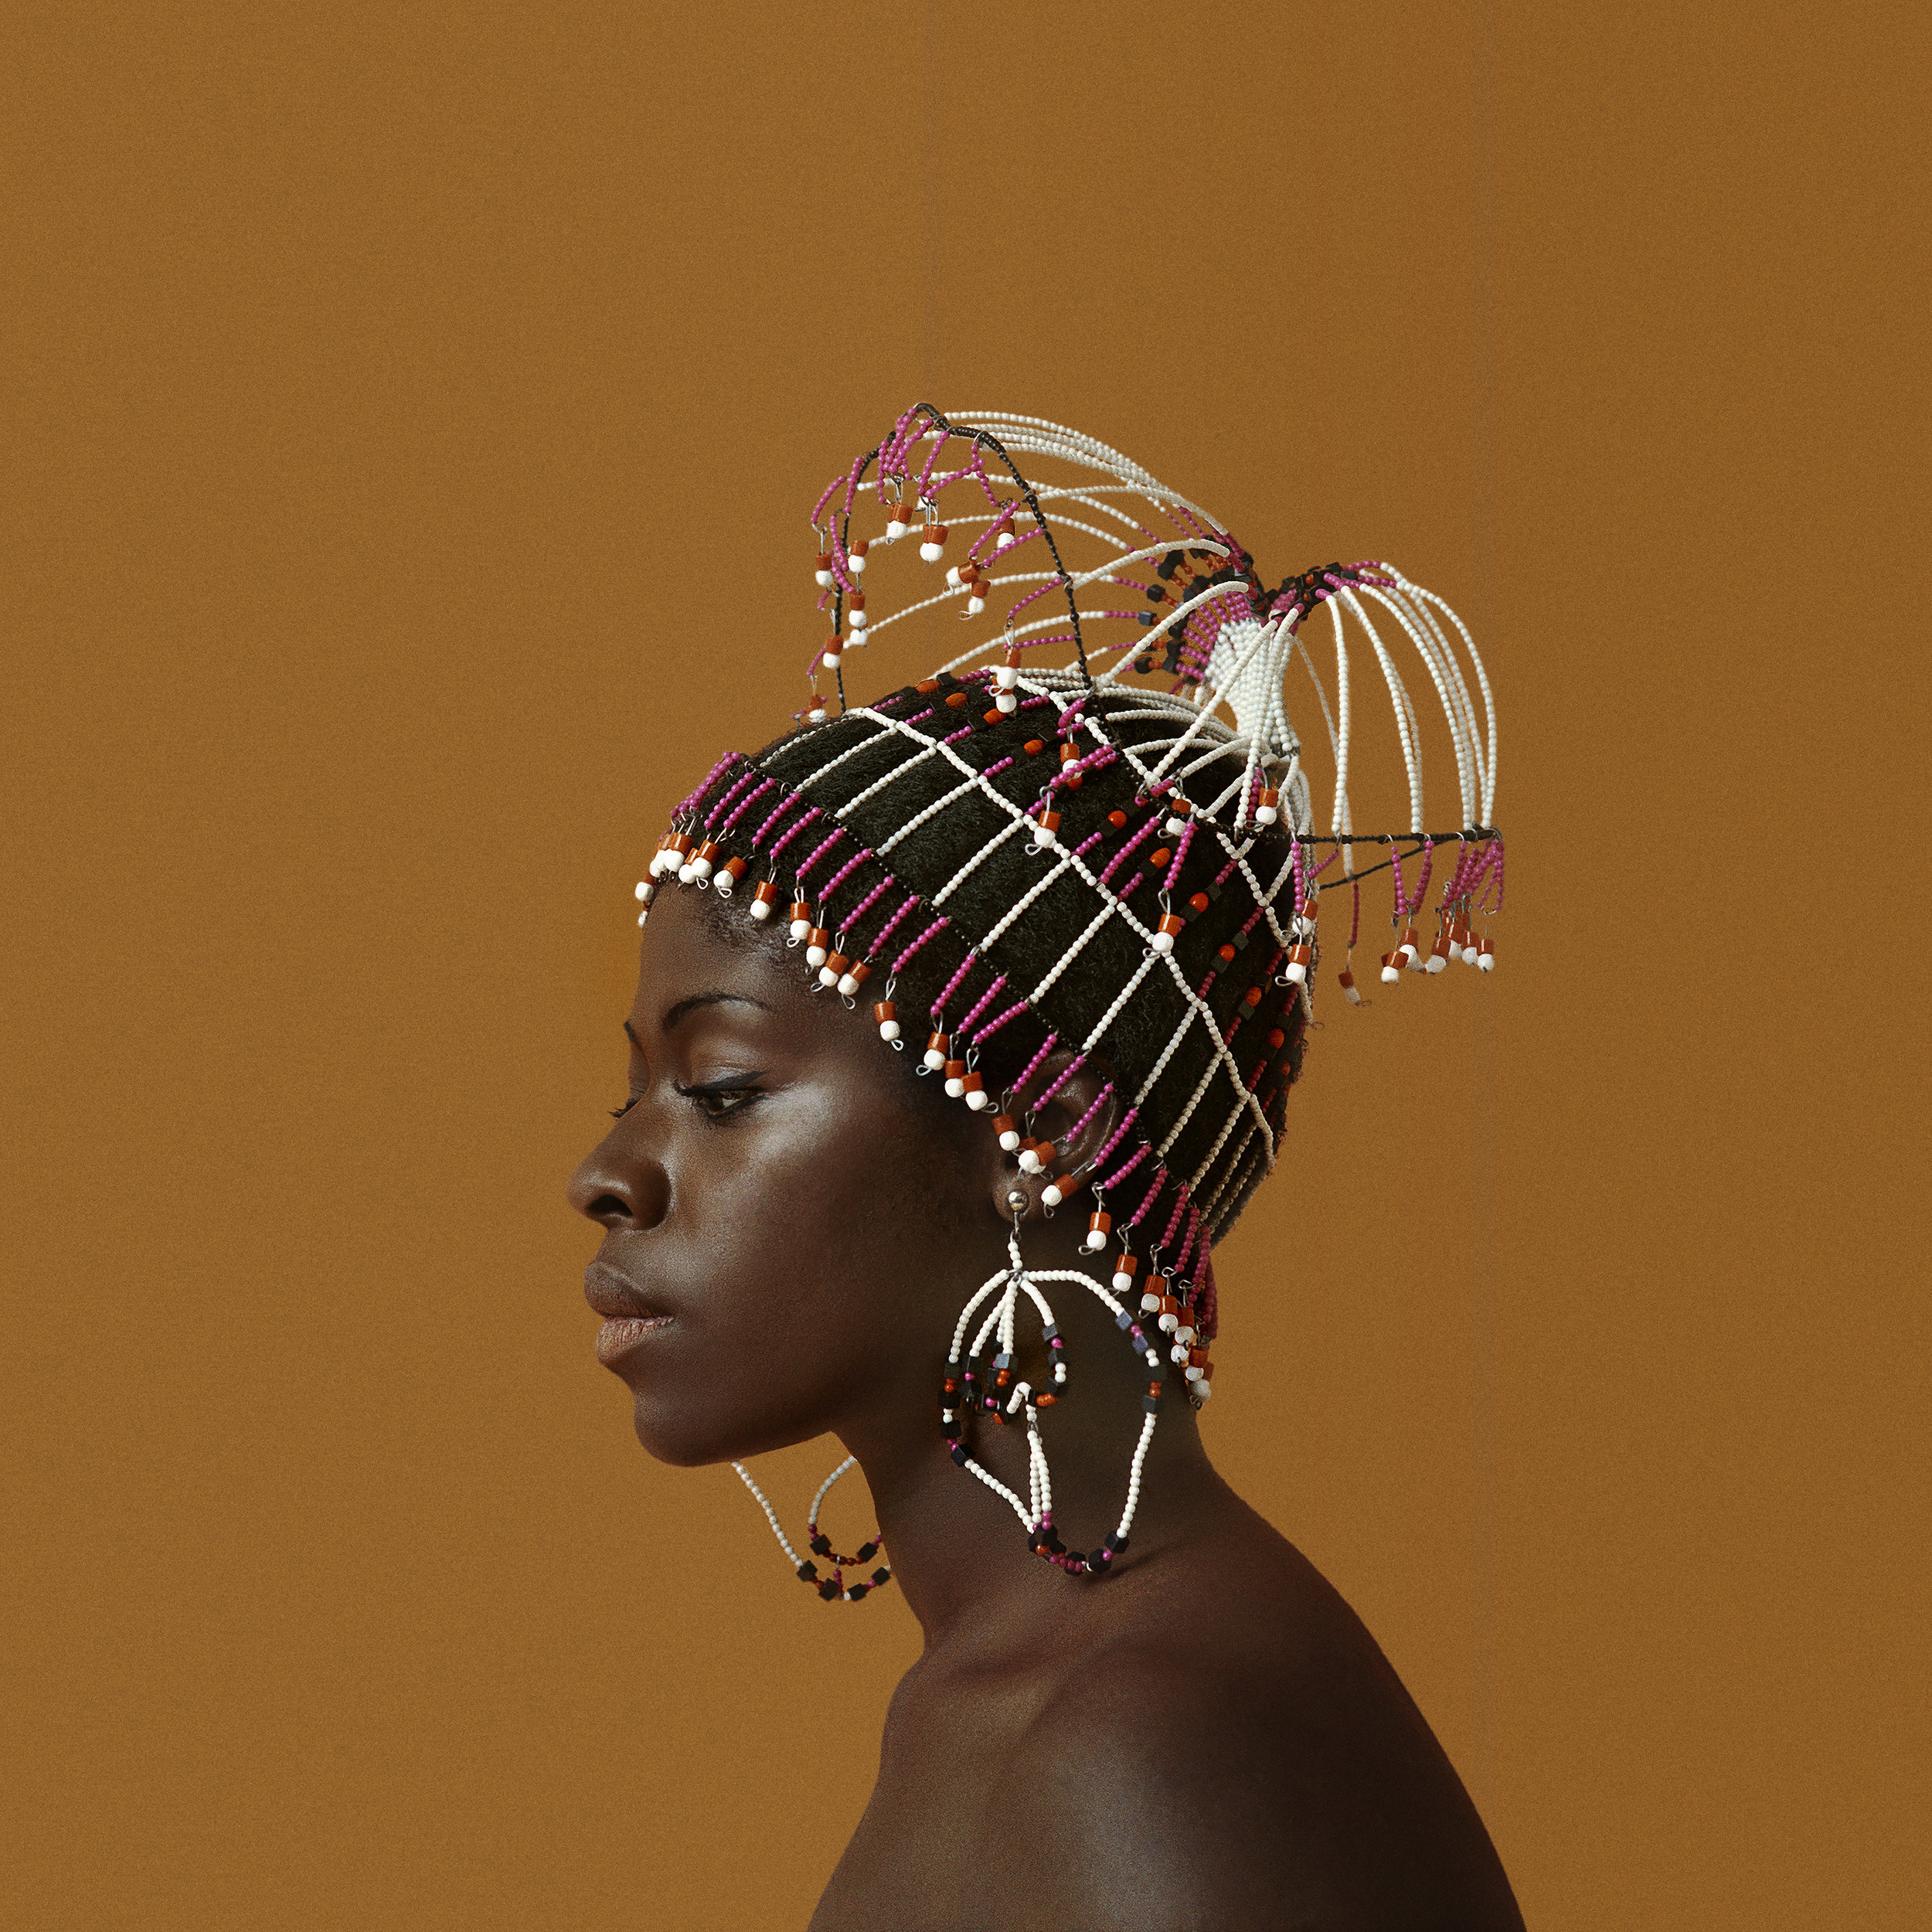 Kwame Brathwaite. Sikolo Brathwaite wearing a headpiece designed by Carolee Prince, AJASS, Harlem, 1968. Courtesy of the artist and Philip Martin Gallery, Los Angeles.